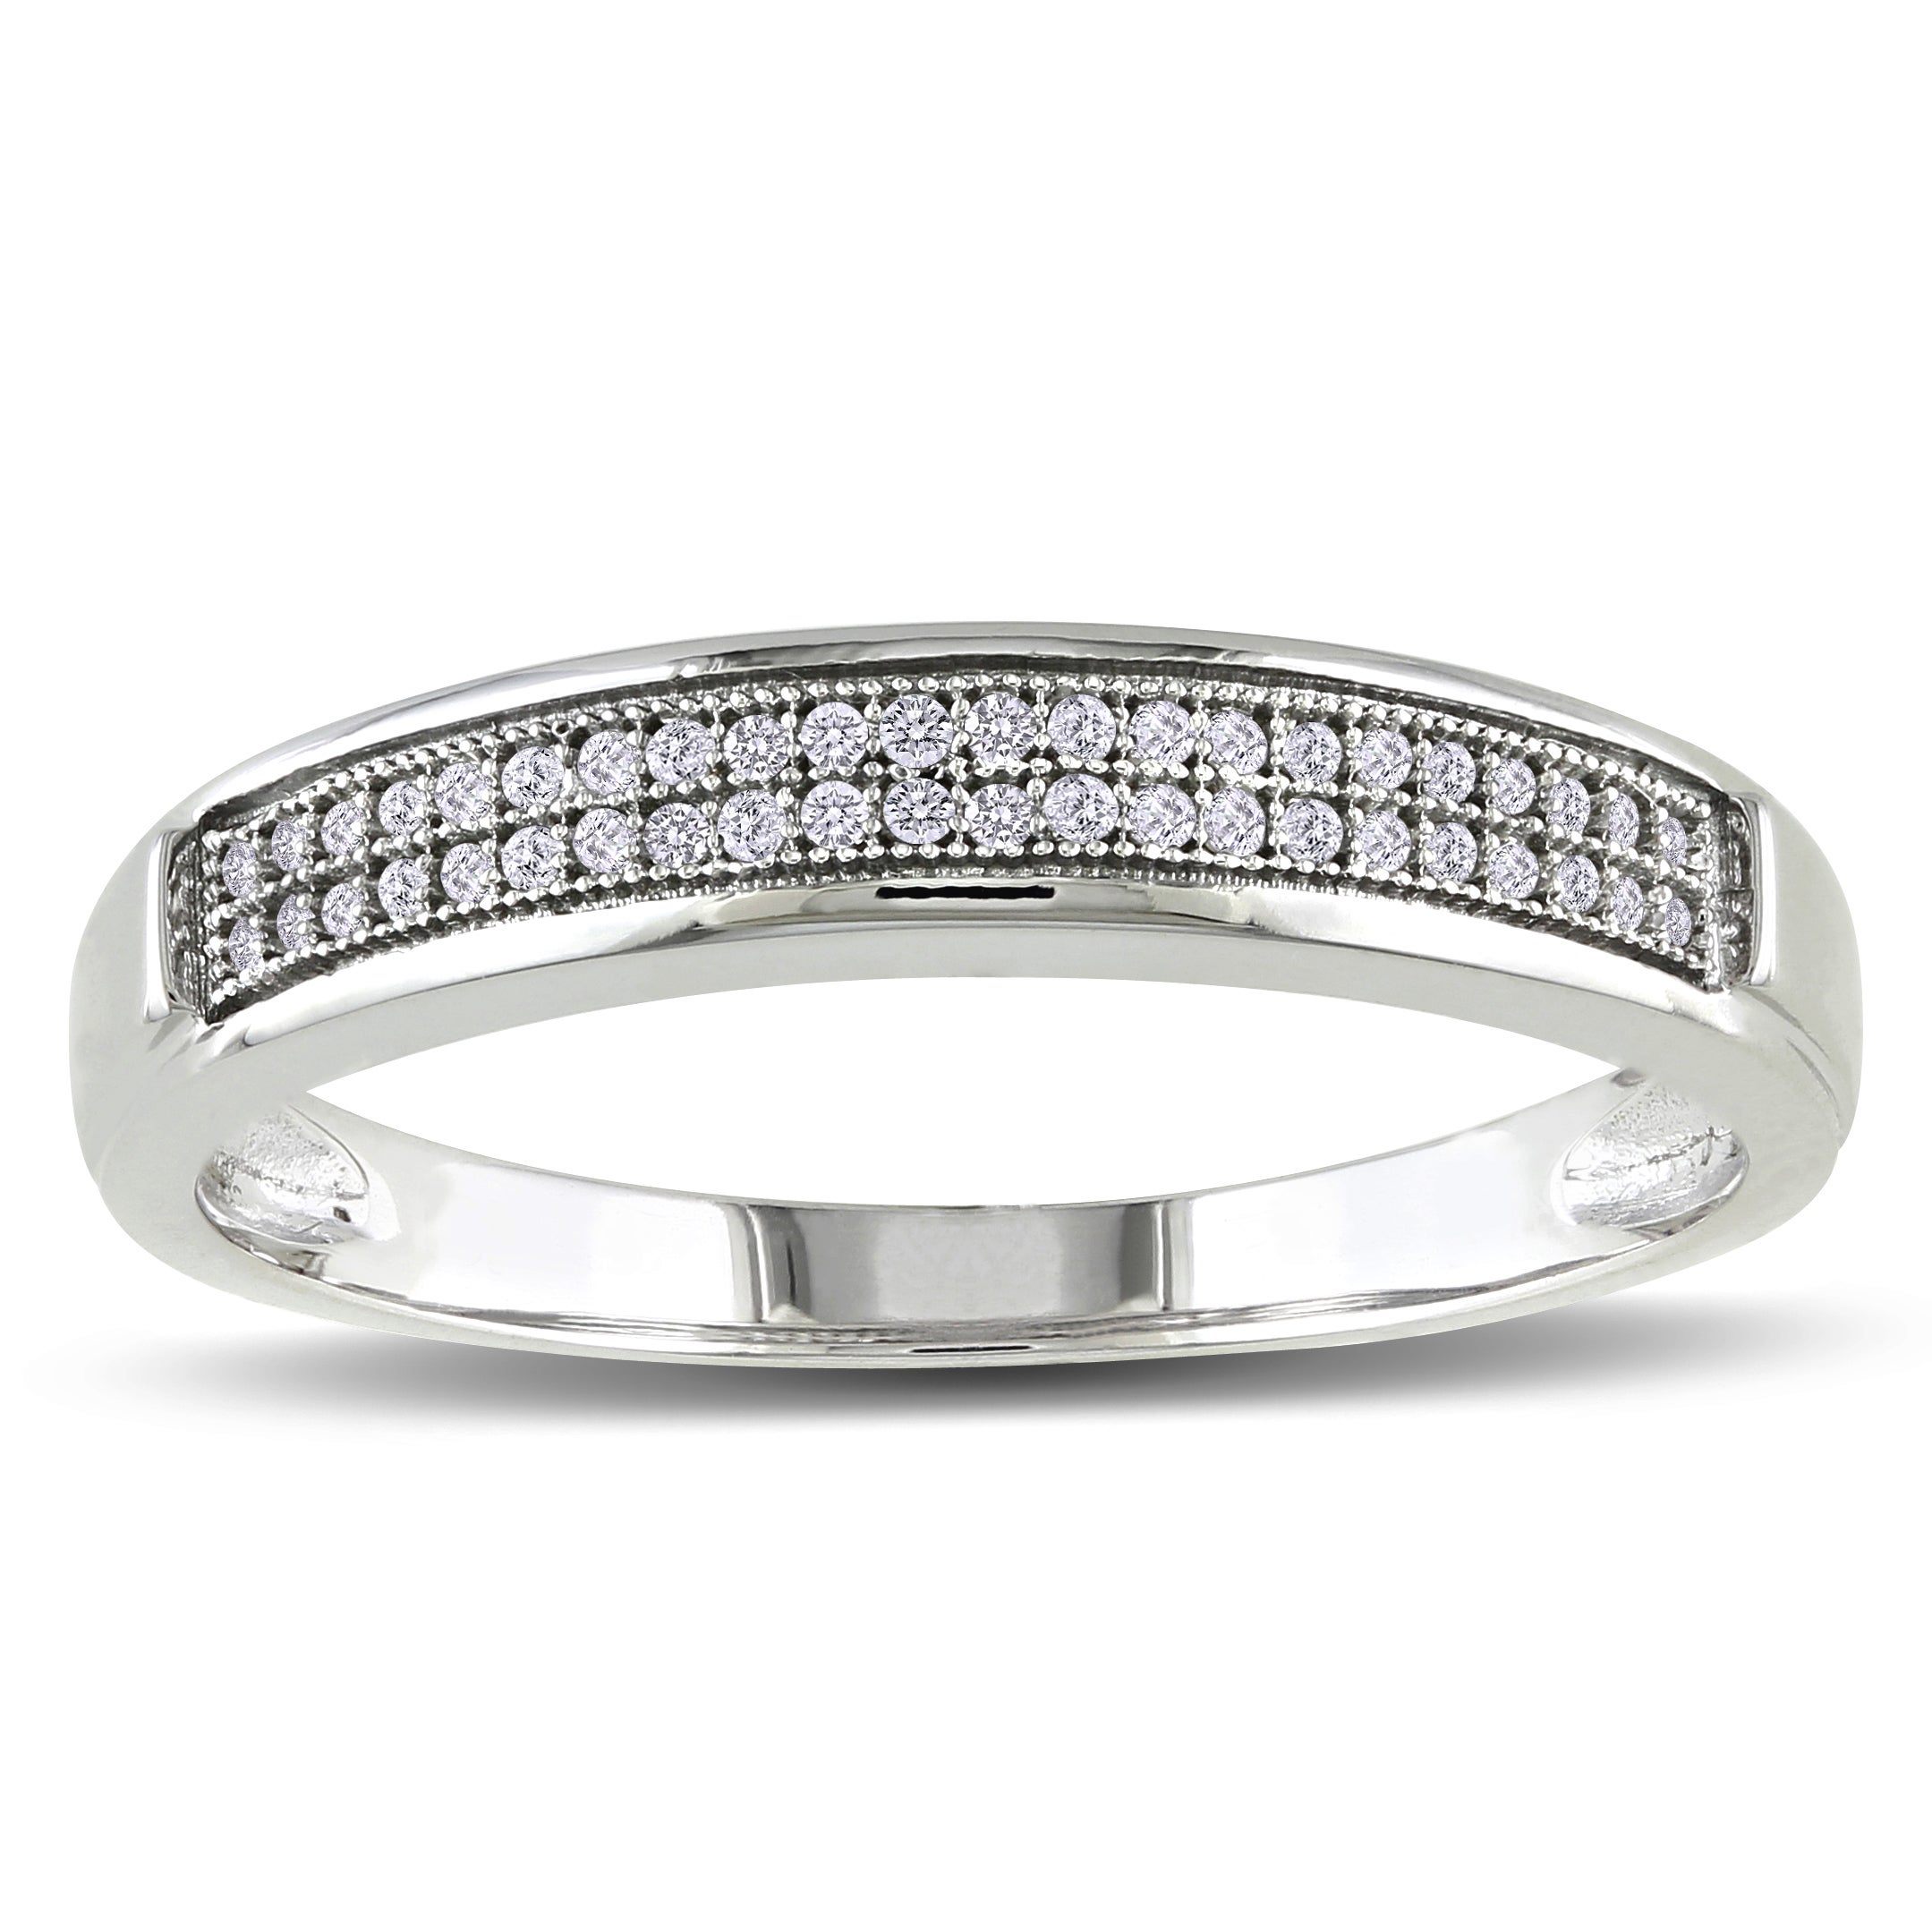 1//10 cttw, Size-7.5 Diamond Wedding Band in Sterling Silver G-H,I2-I3